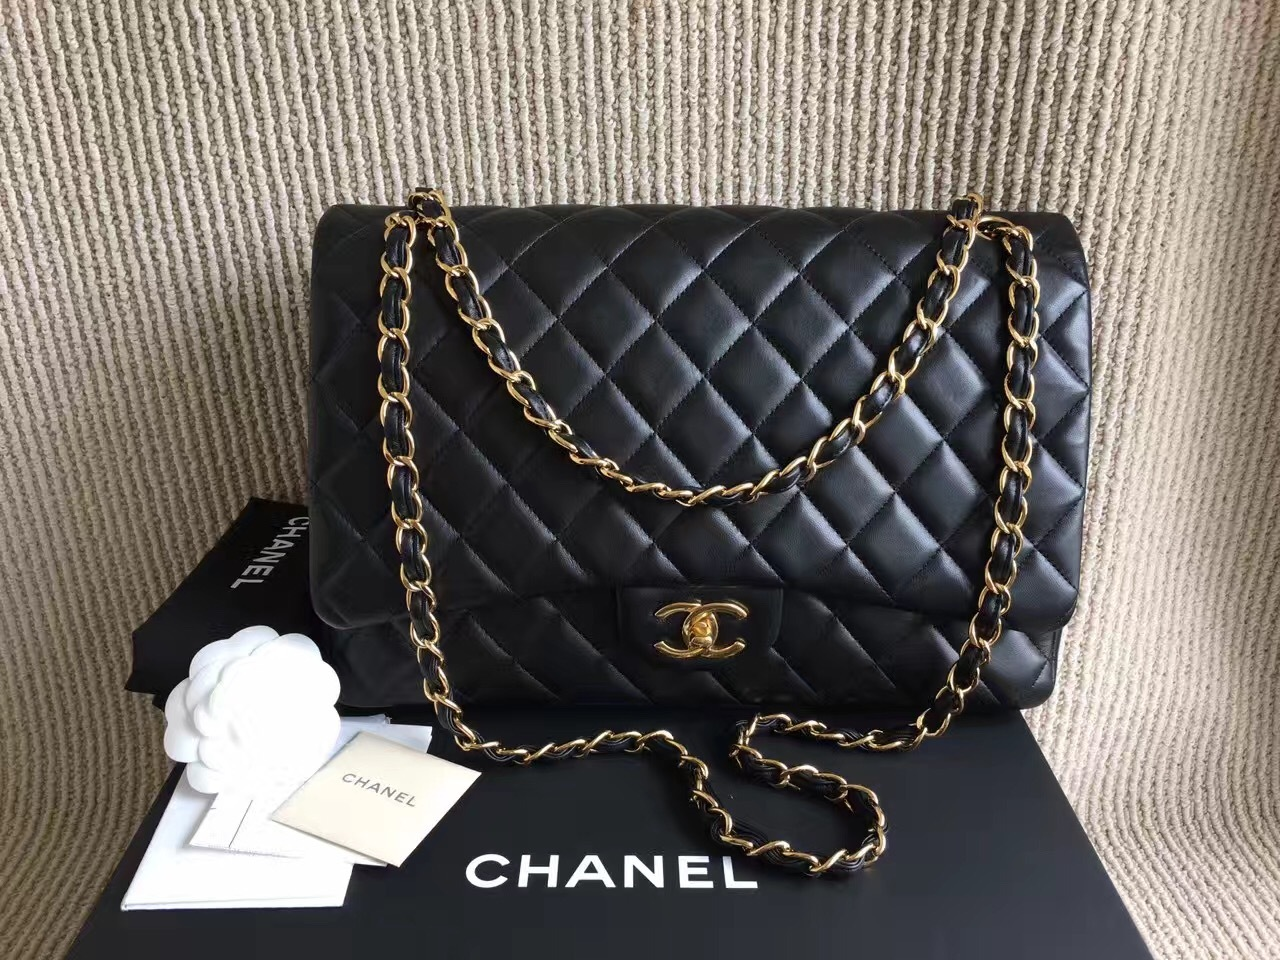 100% AUTH CHANEL BLACK QUILTED LAMBSKIN MAXI DOUBLE FLAP BAG GHW WITH RECEIPT